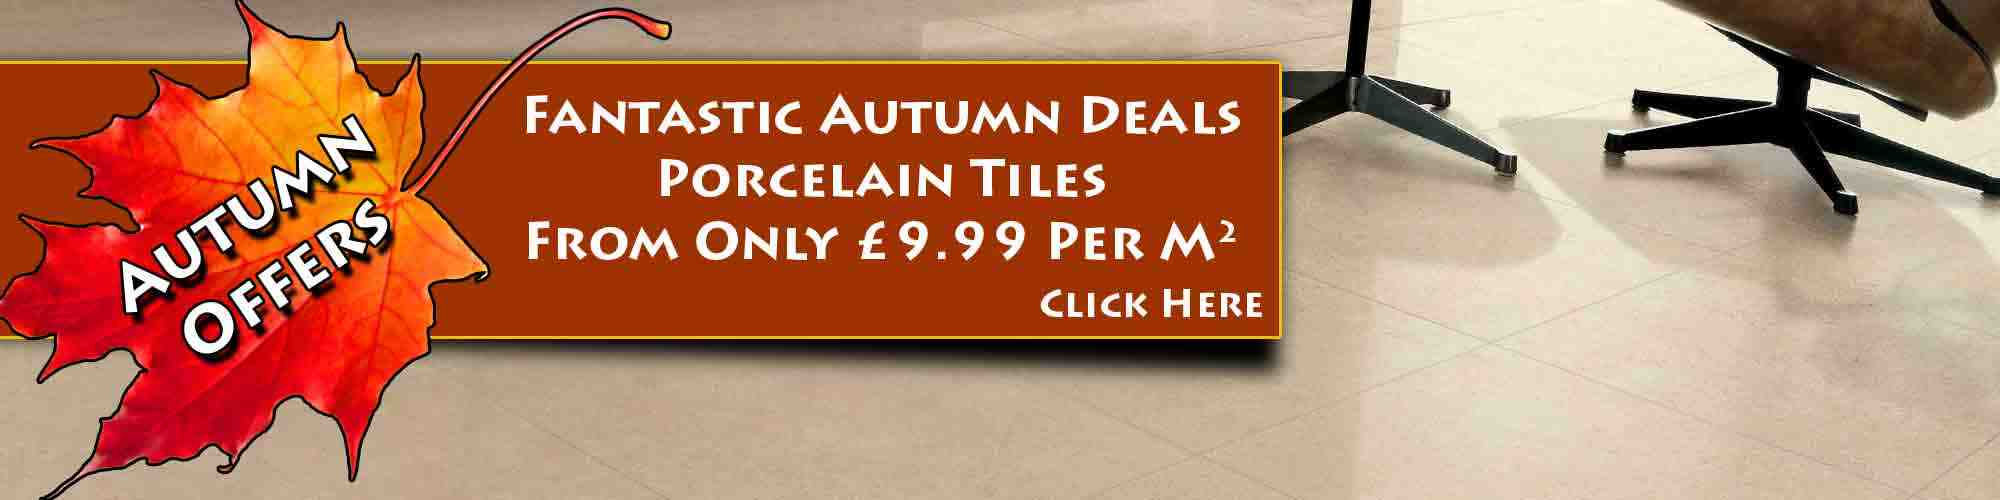 October Special Offers on Porcelain Tiles This Autumn